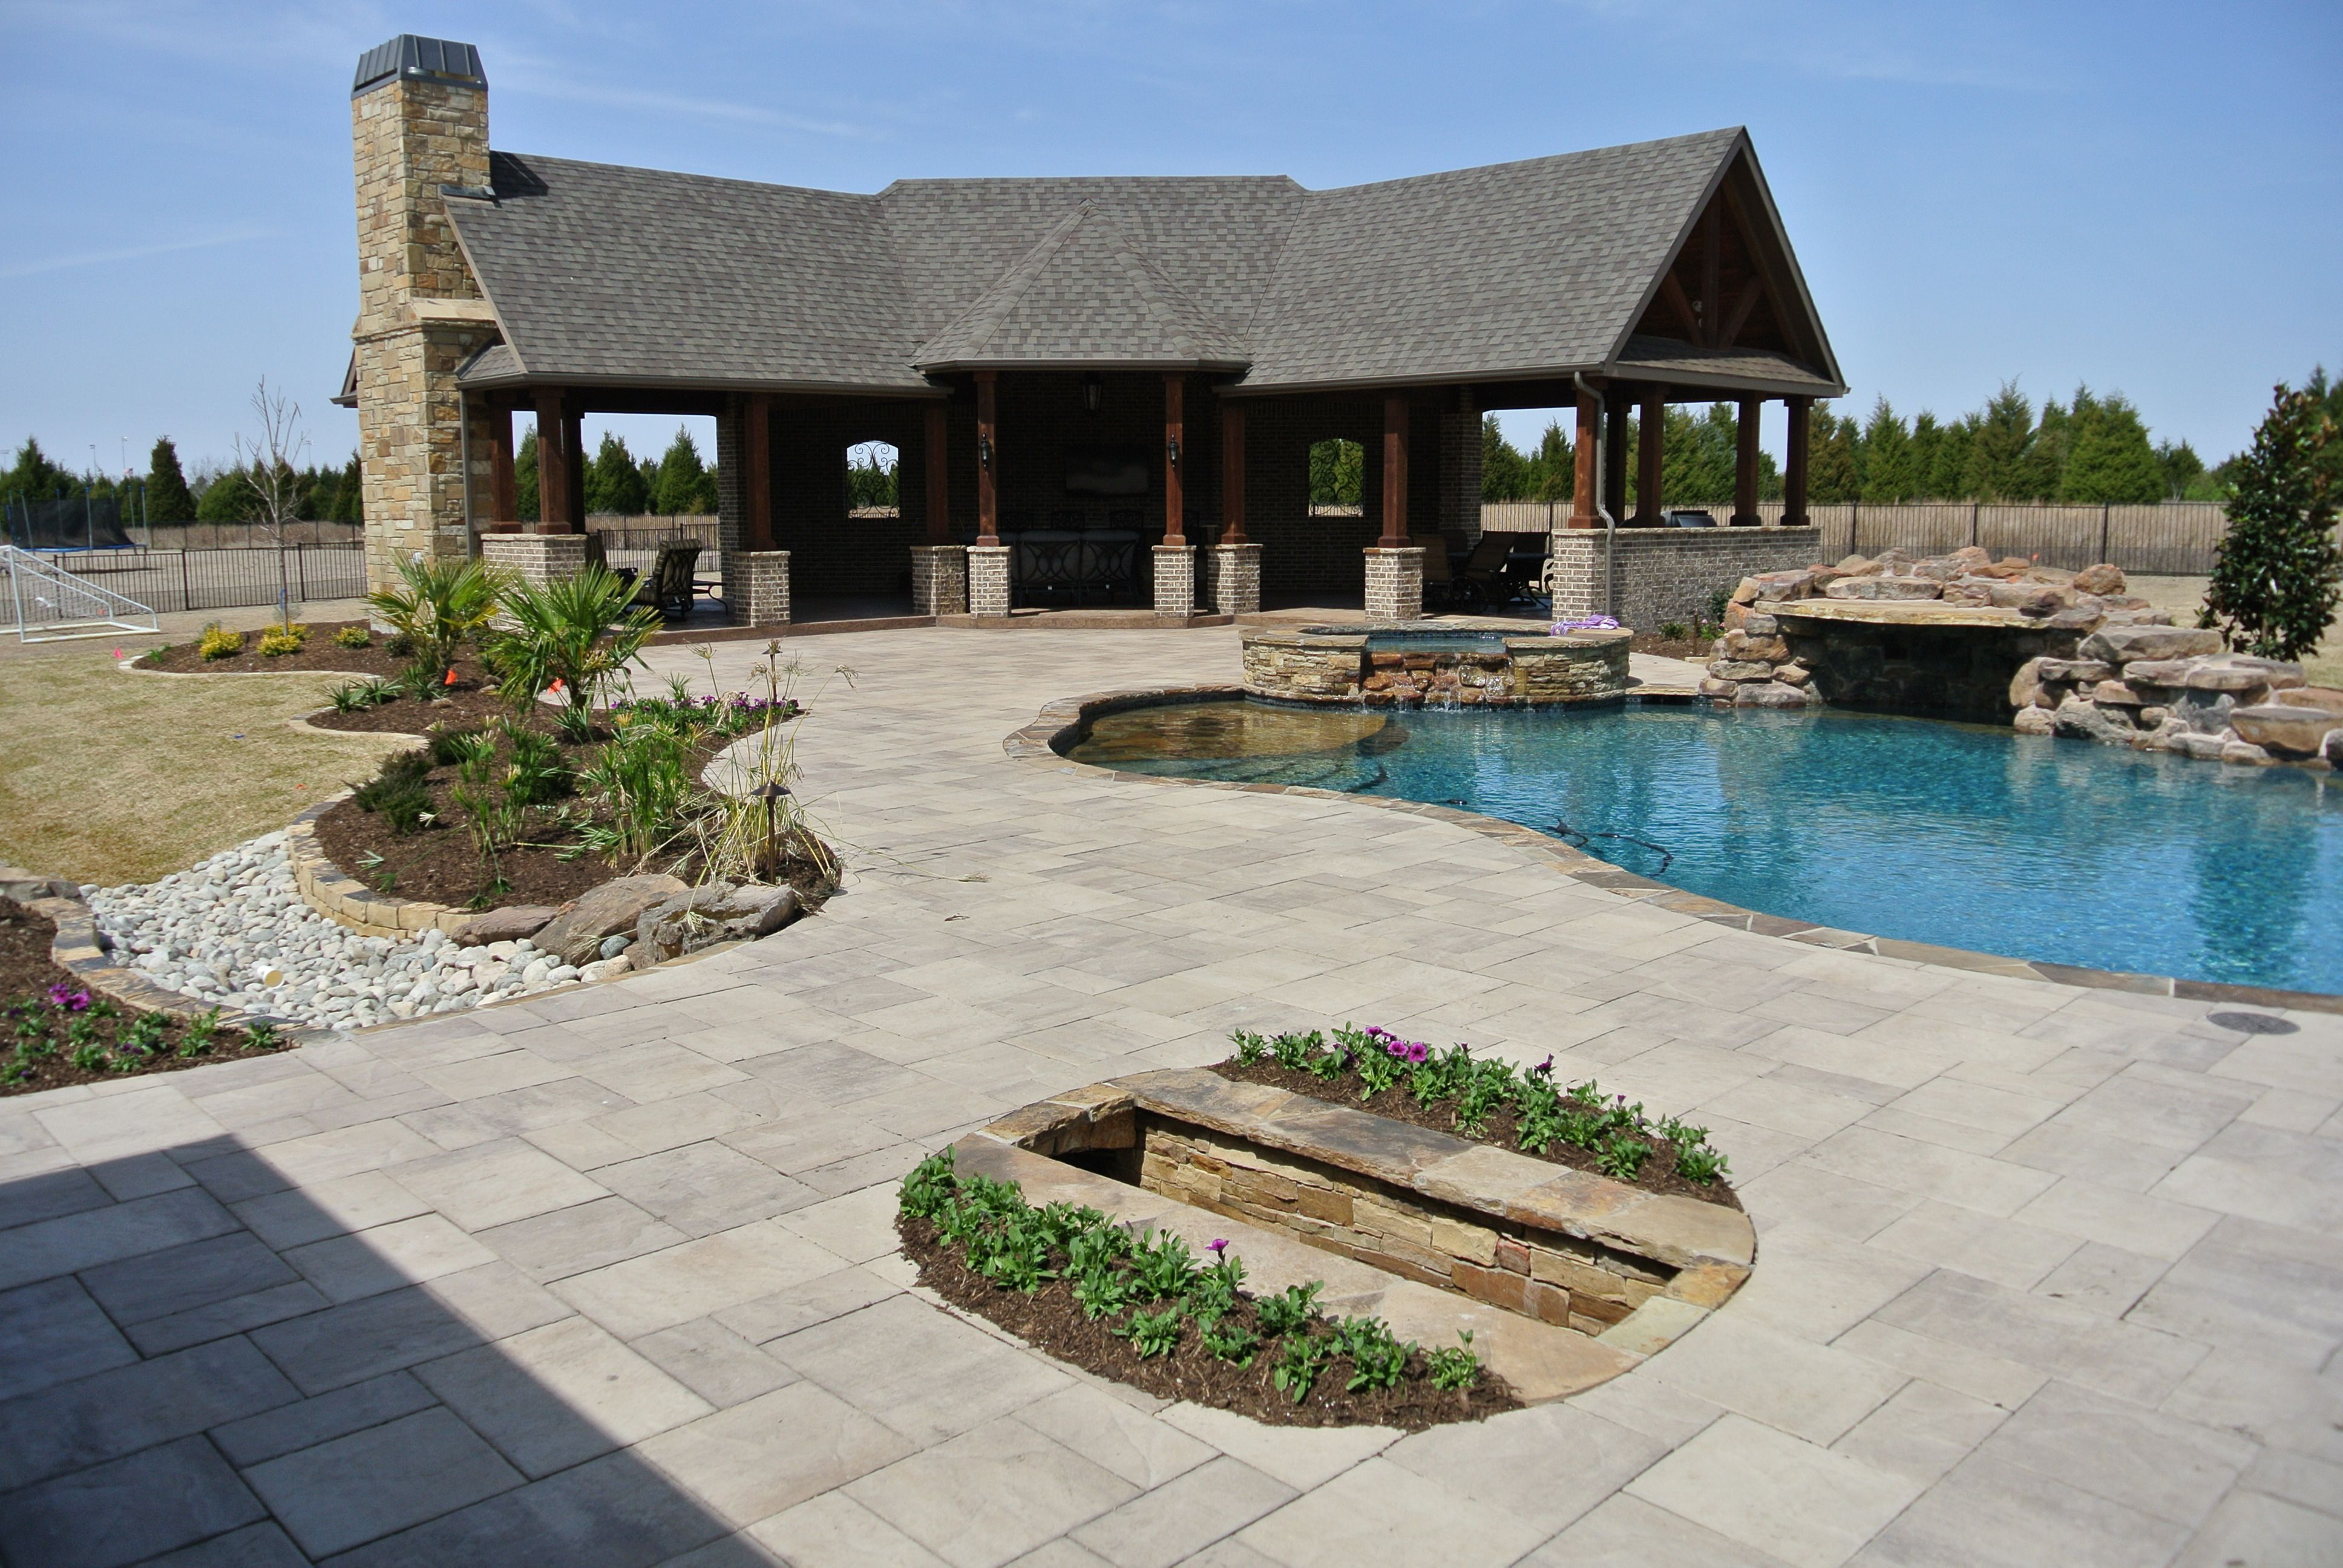 Outdoor Living Area and Pool Installation by Graves Lawn ... on Retreat Outdoor Living id=21205